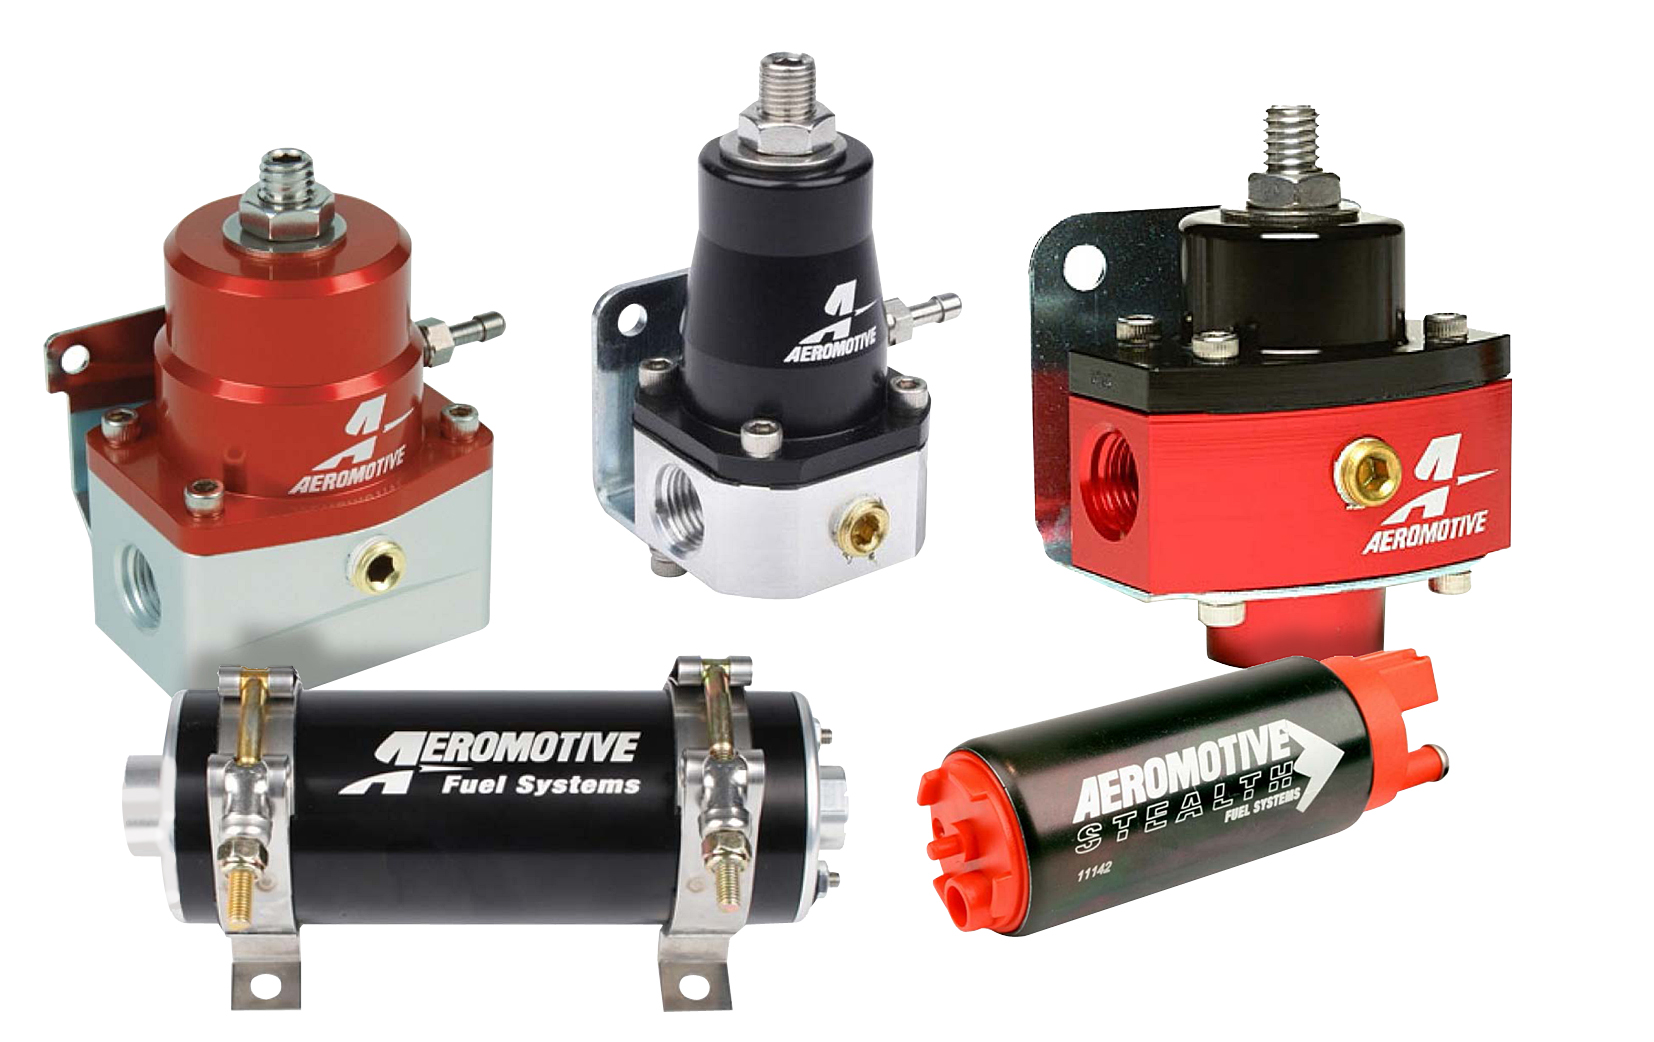 Aeromotive Fuel Pumps Now Available From Viper Performance Filter Were Really Pleased That We Can Offer A Comprehensive Selection Of Very High Quality System Products By Leading American Producer